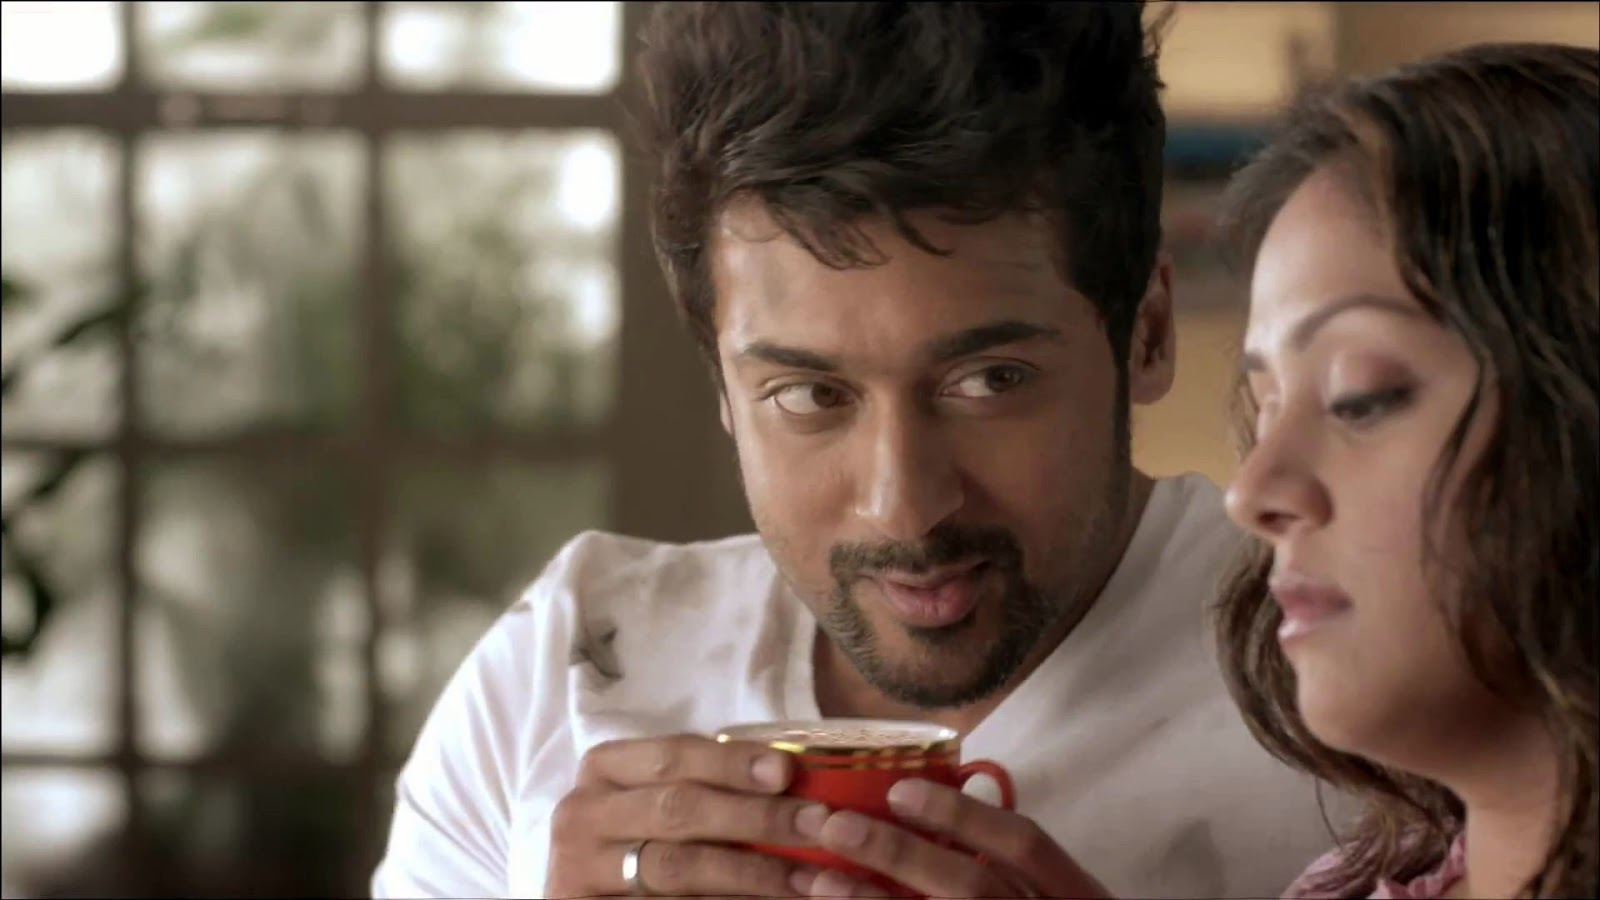 Surya Sikindar Stills In Hd Wallpapers: Actor Surya And Jyothika Coffee Add Images In HD